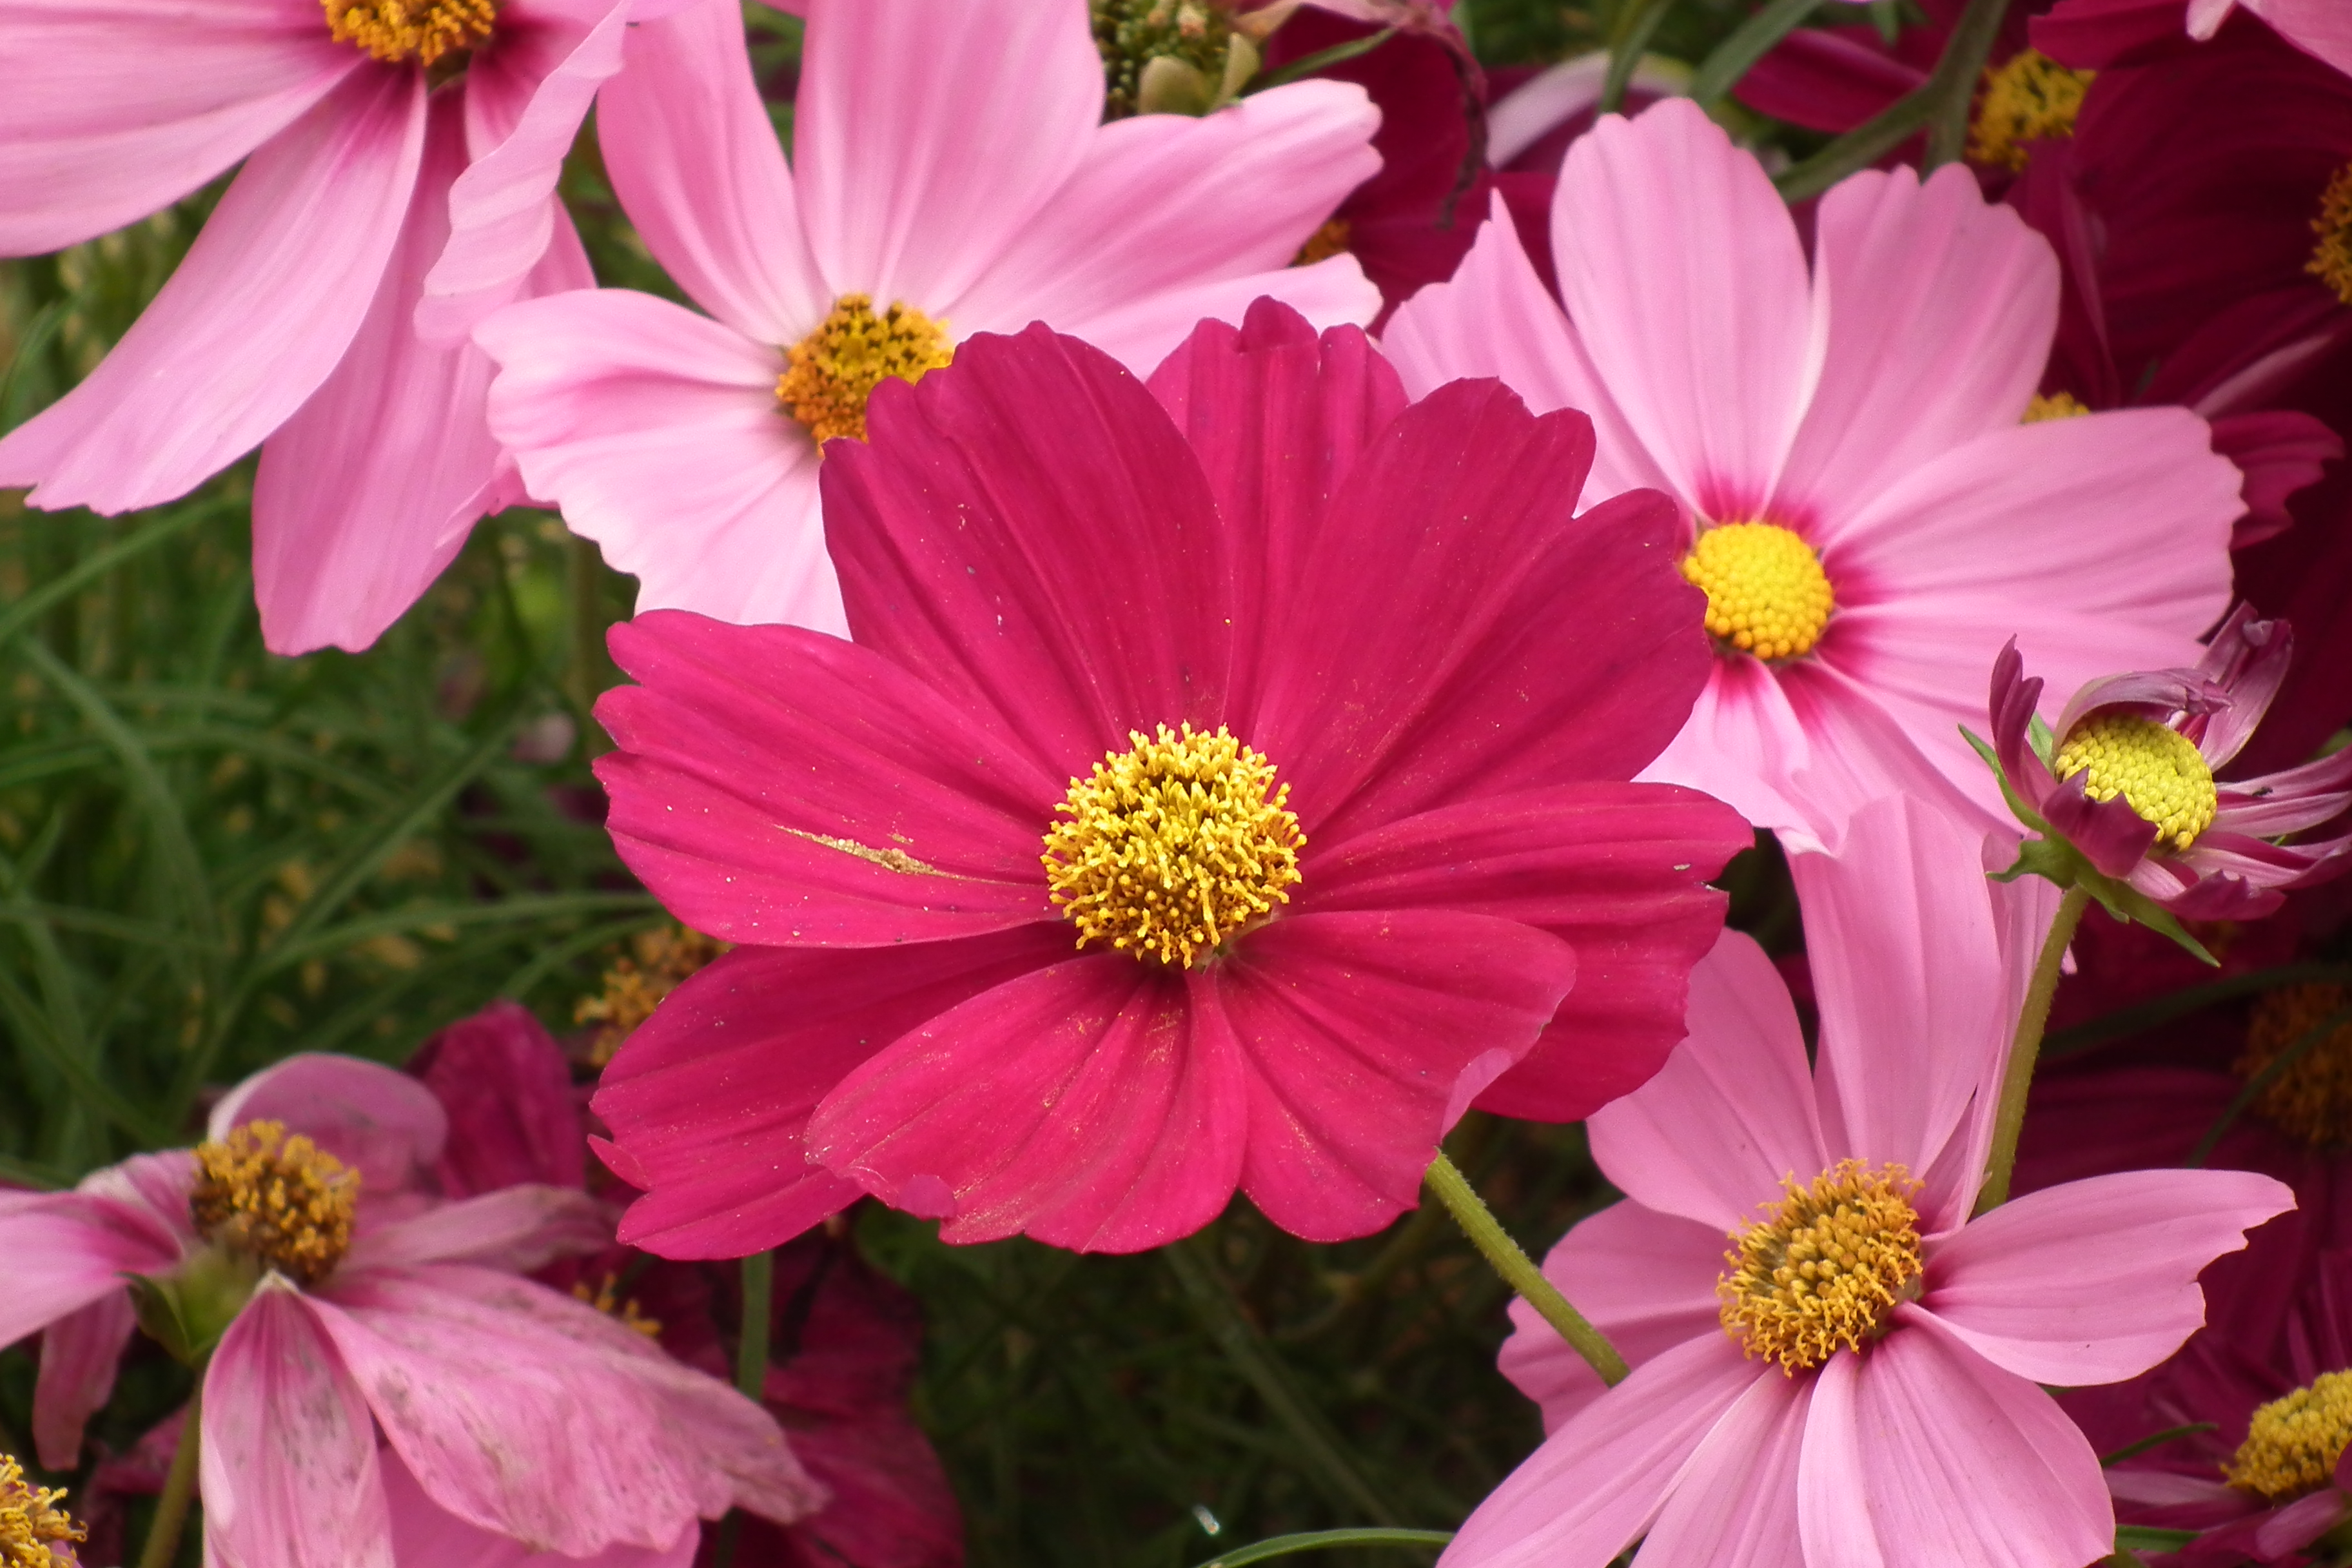 File:Cosmos flower at lalbagh 7075.JPG - Wikimedia Commons